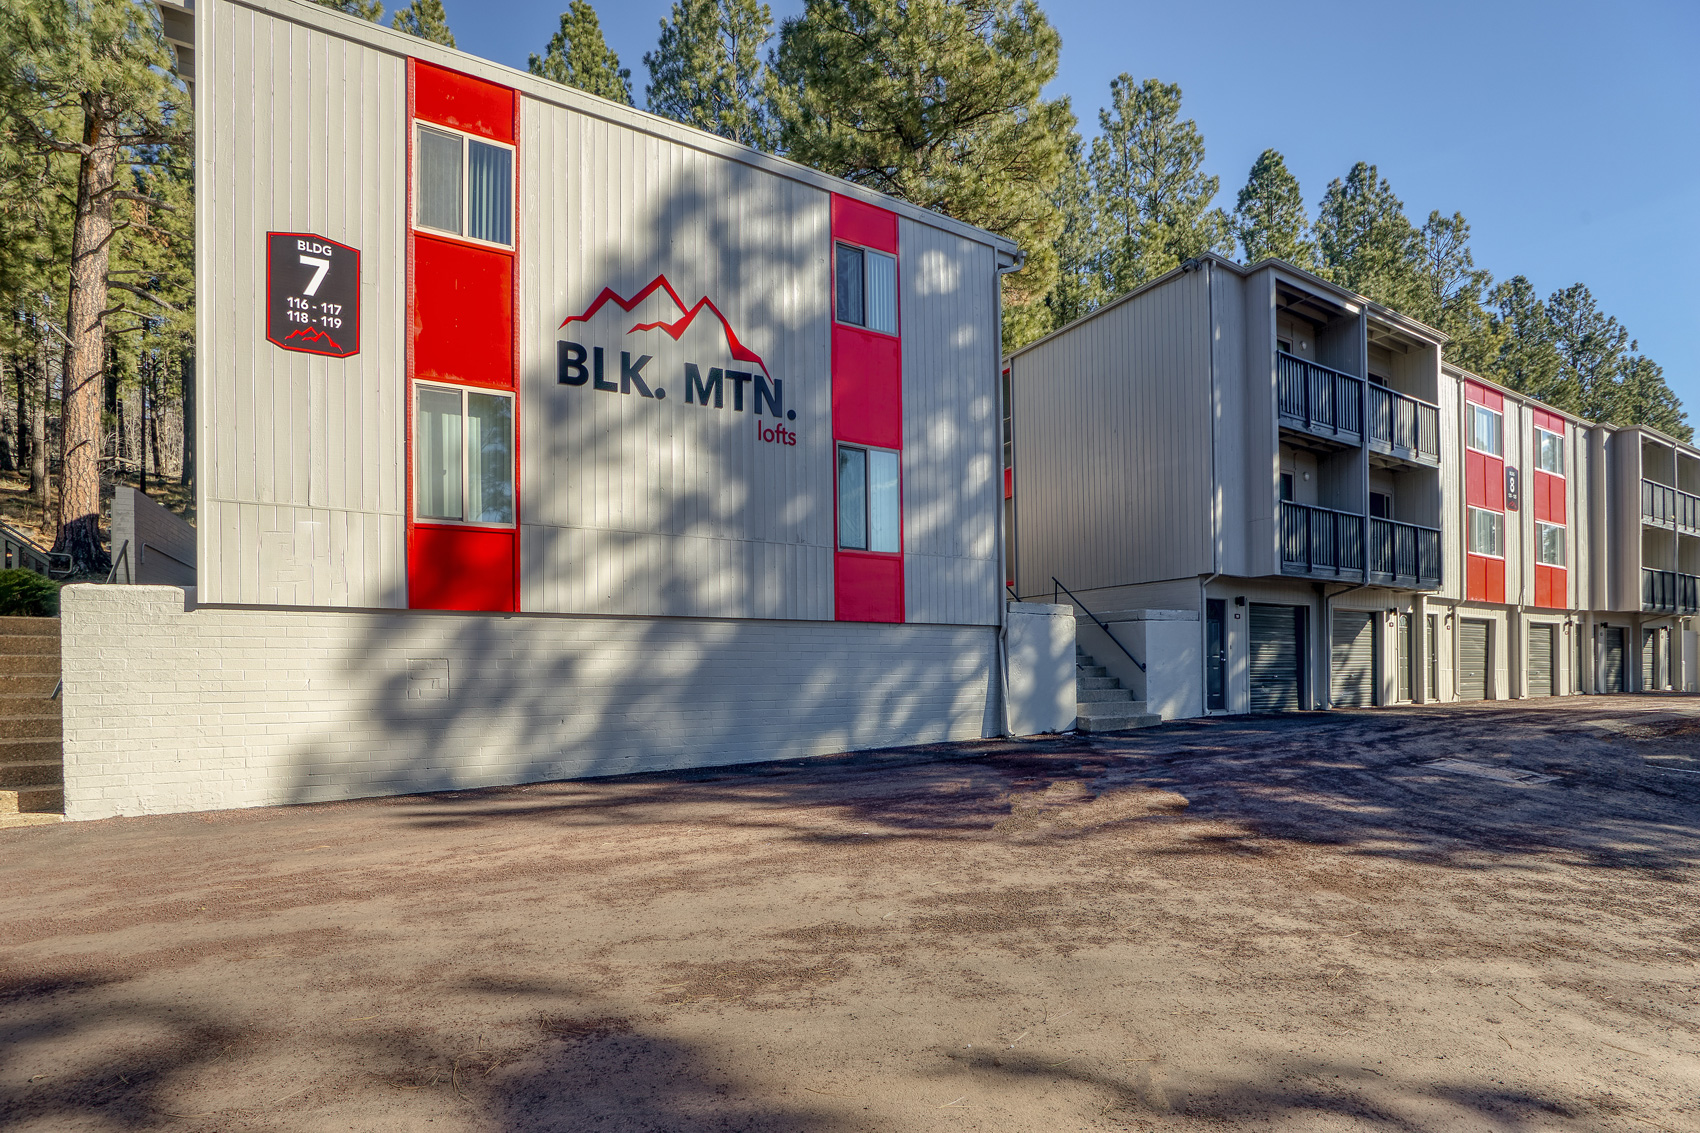 Newly Constructed Apartments in Flagstaff at Blk. Mtn. Lofts Apartments in Flagstaff, Arizona